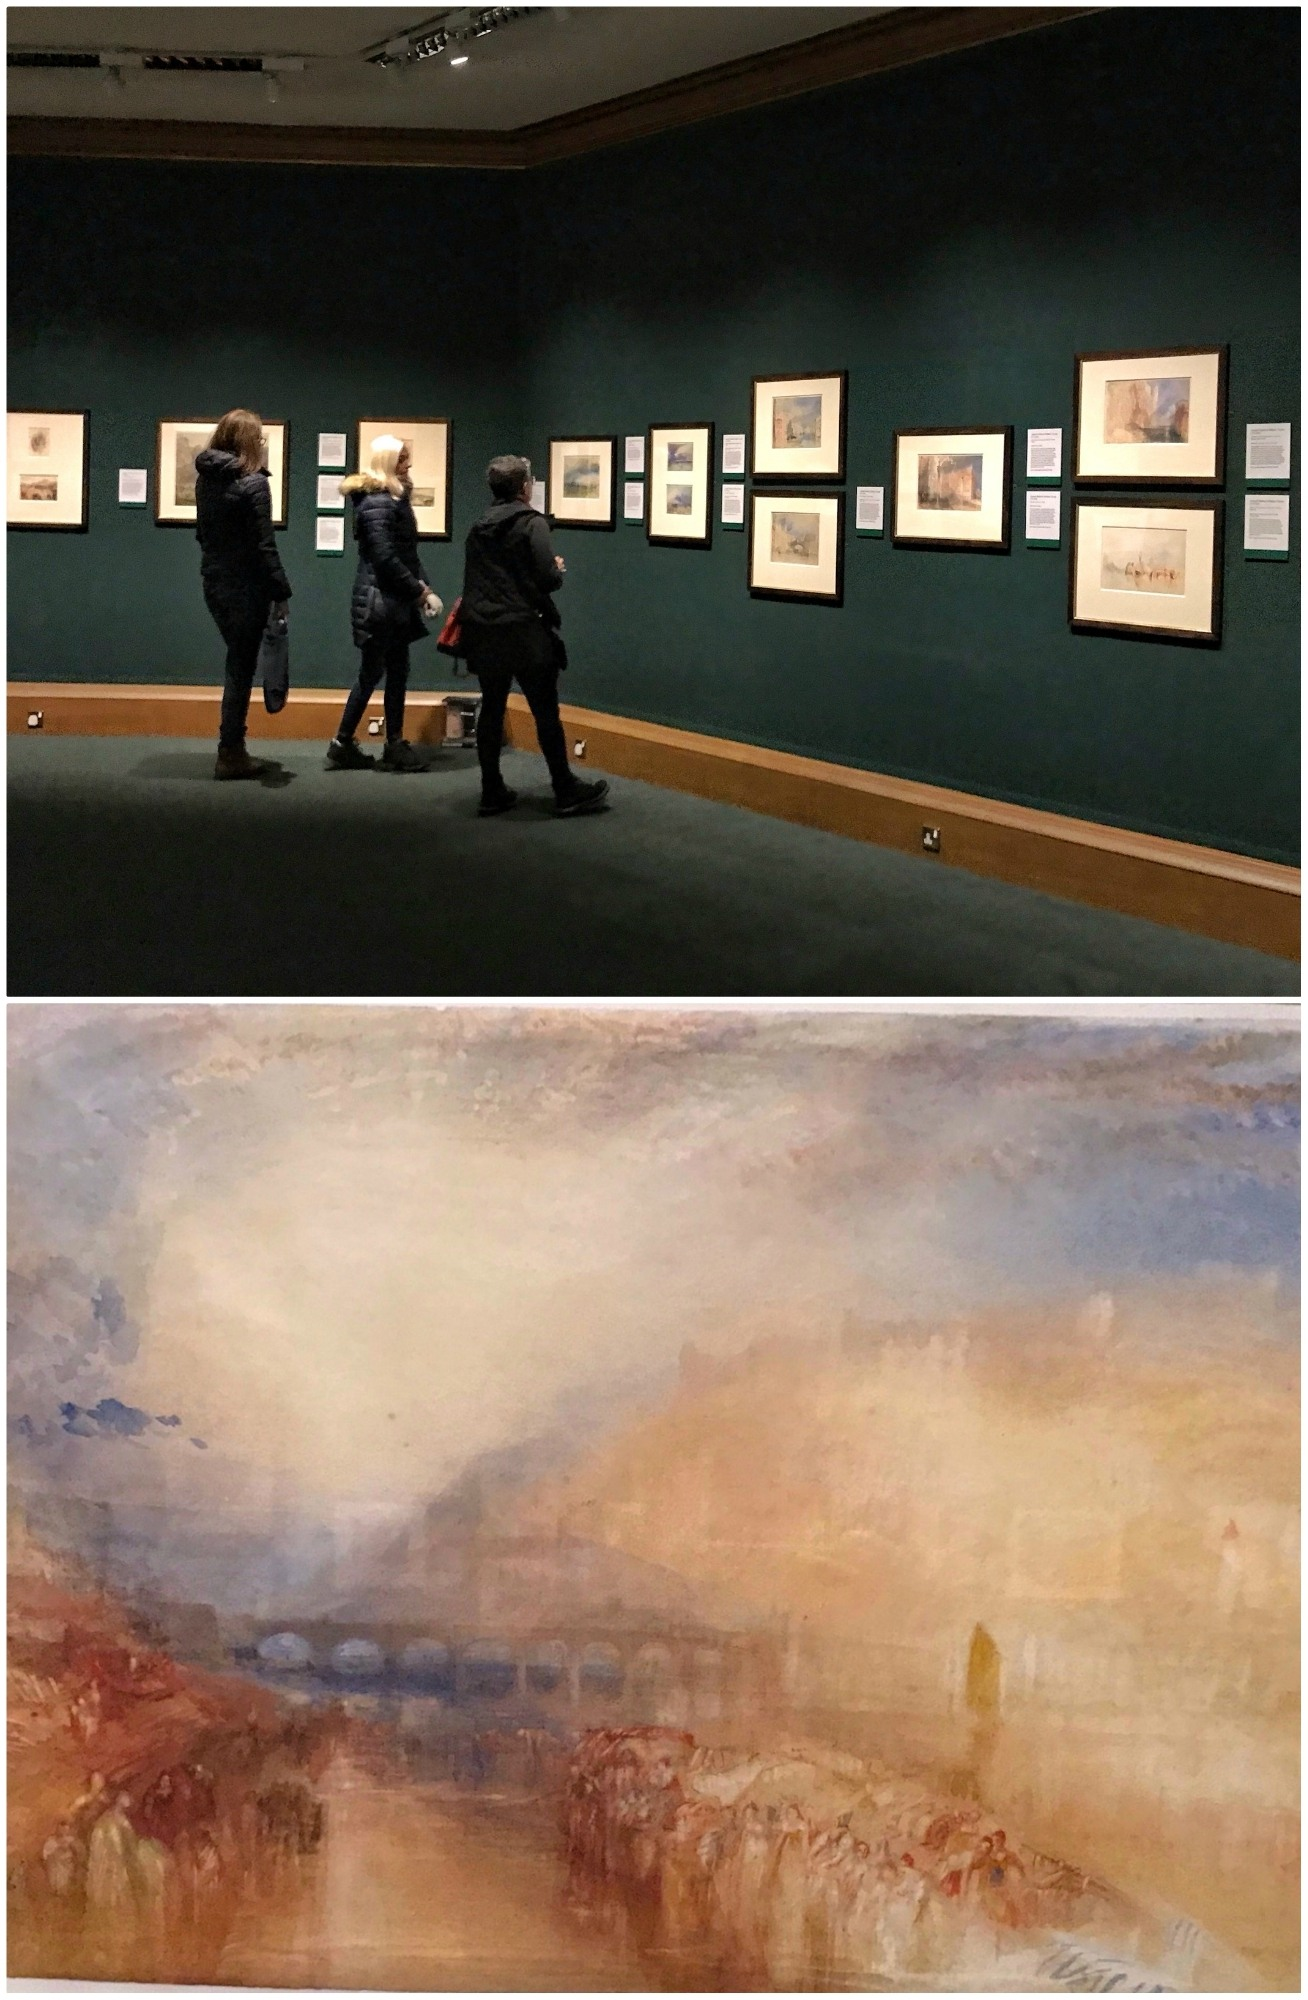 Turner in January at the Scottish National Gallery Photo Heatheronhertravels.com